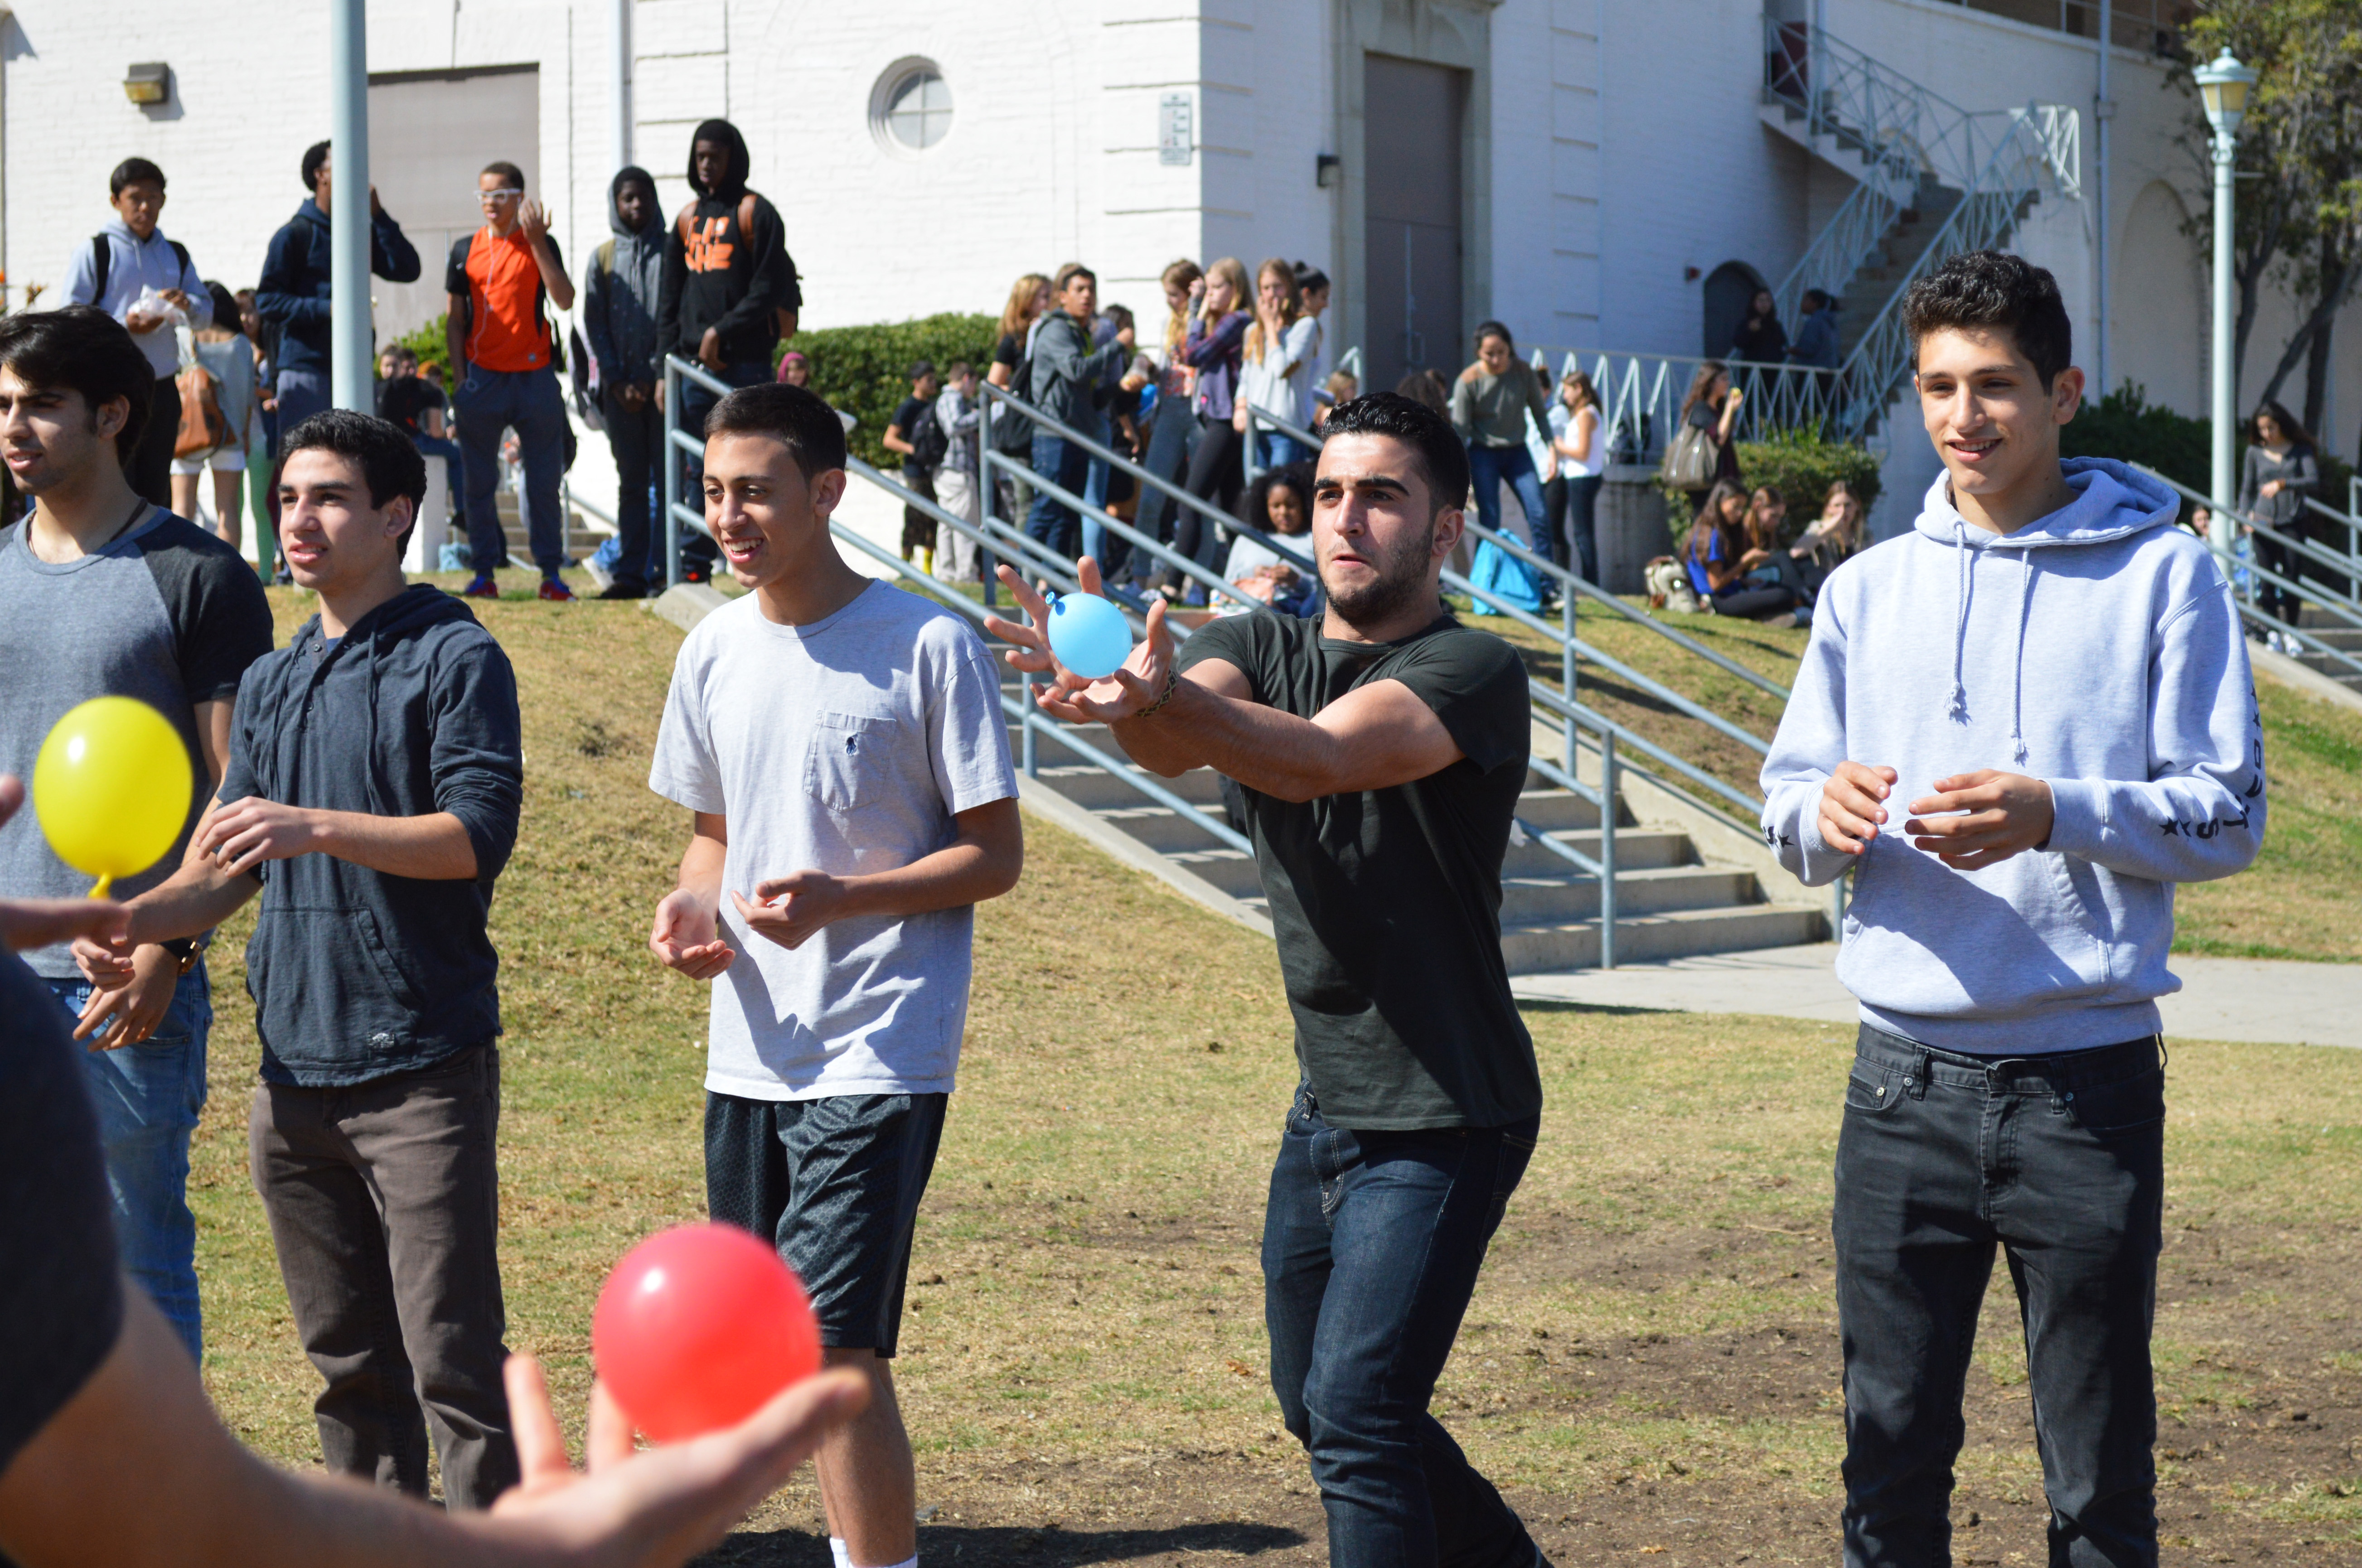 Juniors and seniors participate in the first activity of Monday's lunch event, the water balloon toss.